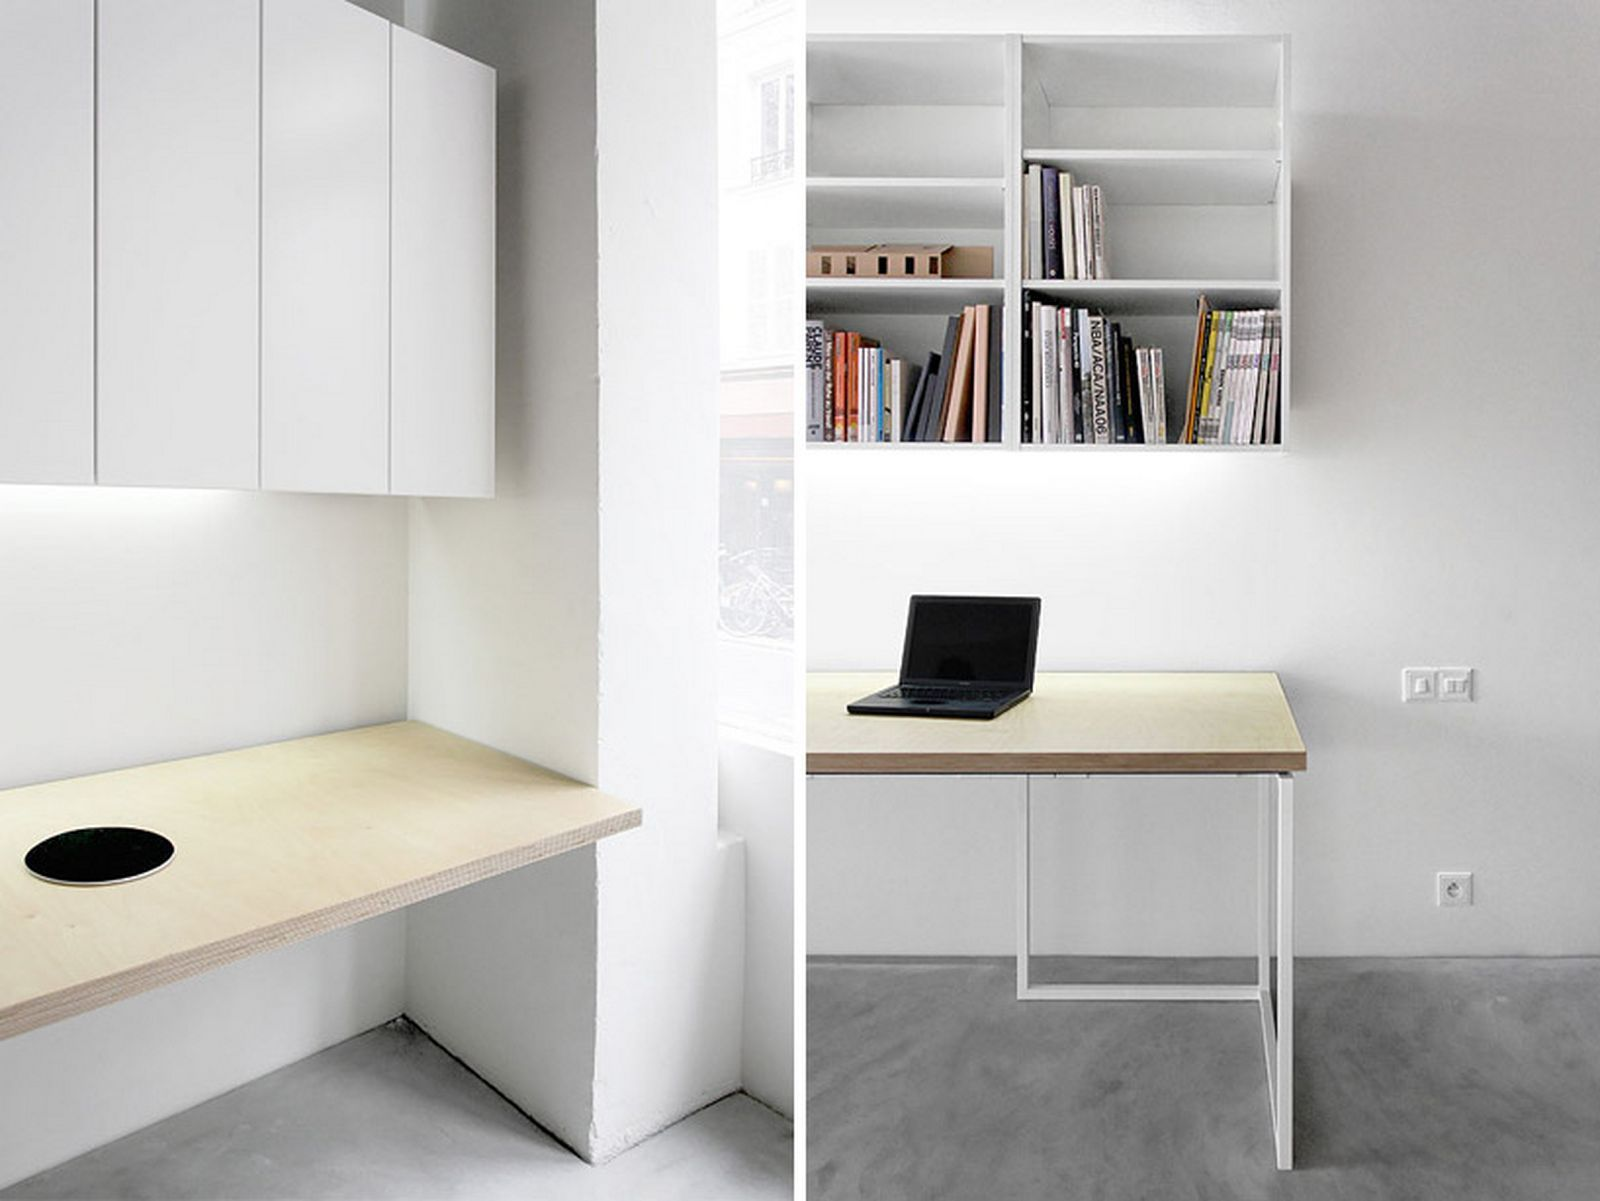 minimalist room for office desk design with simple white cabinets color and casual shelf and fullfiled books in under part and small black laptop and pale